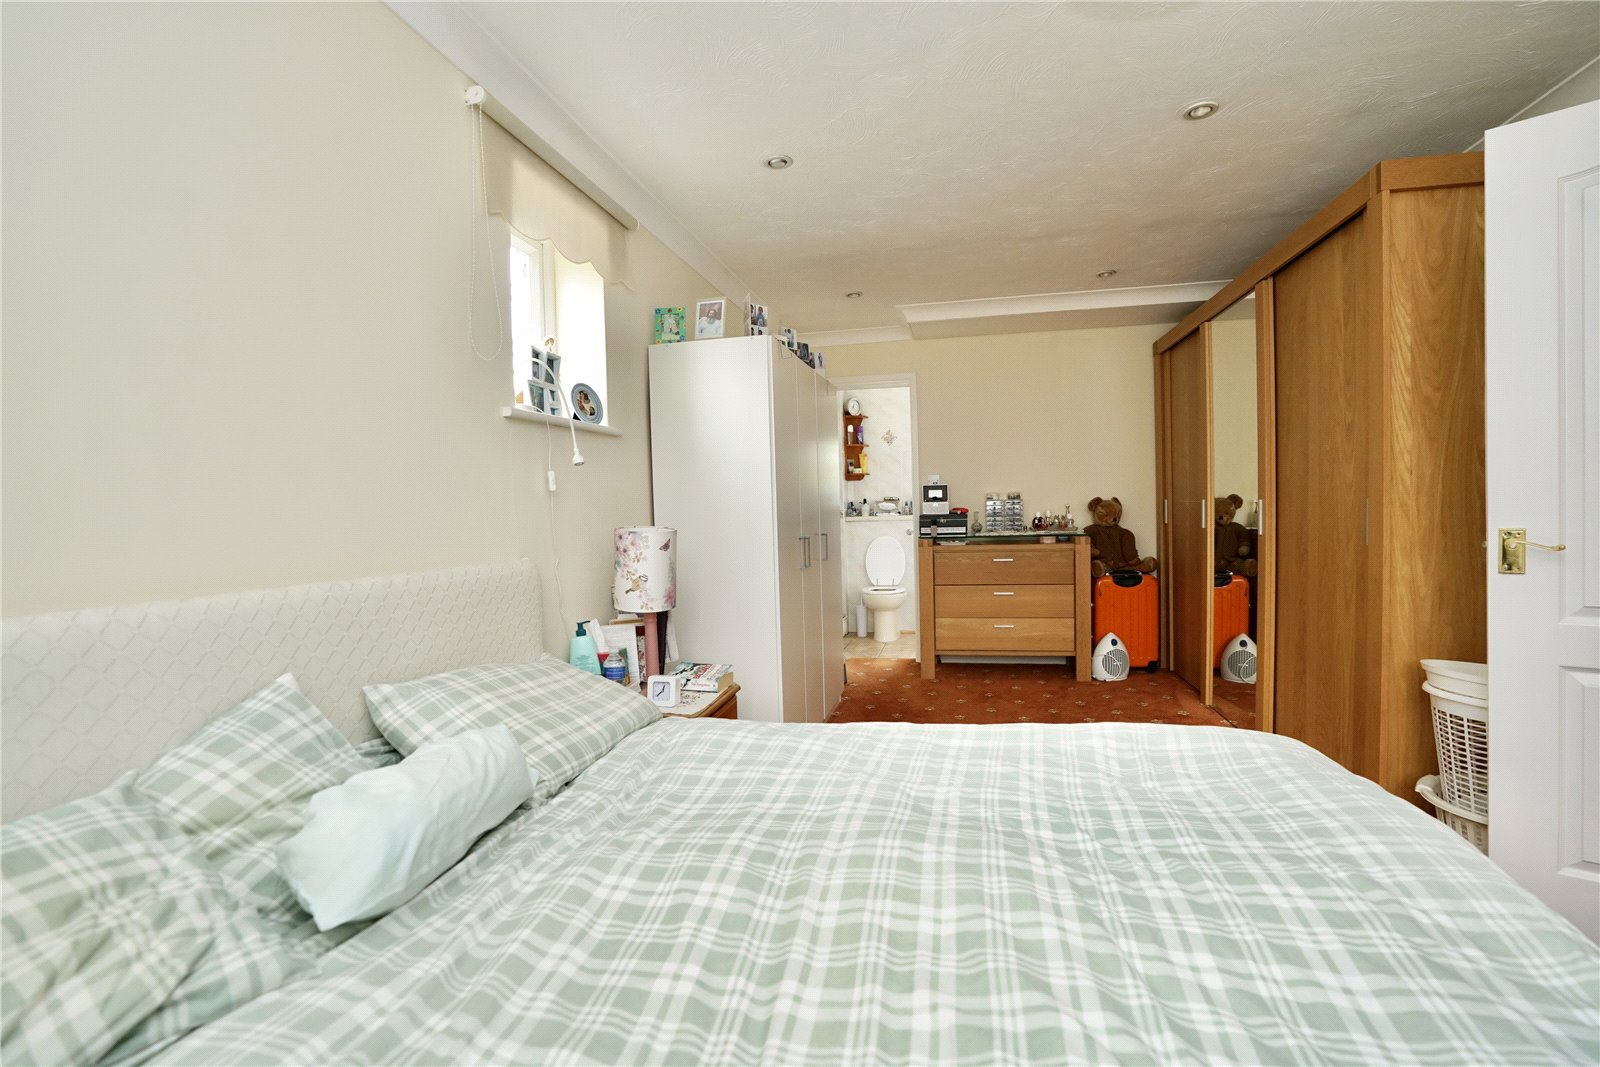 3 bed house for sale in Cunningham Way, Eaton Socon 6